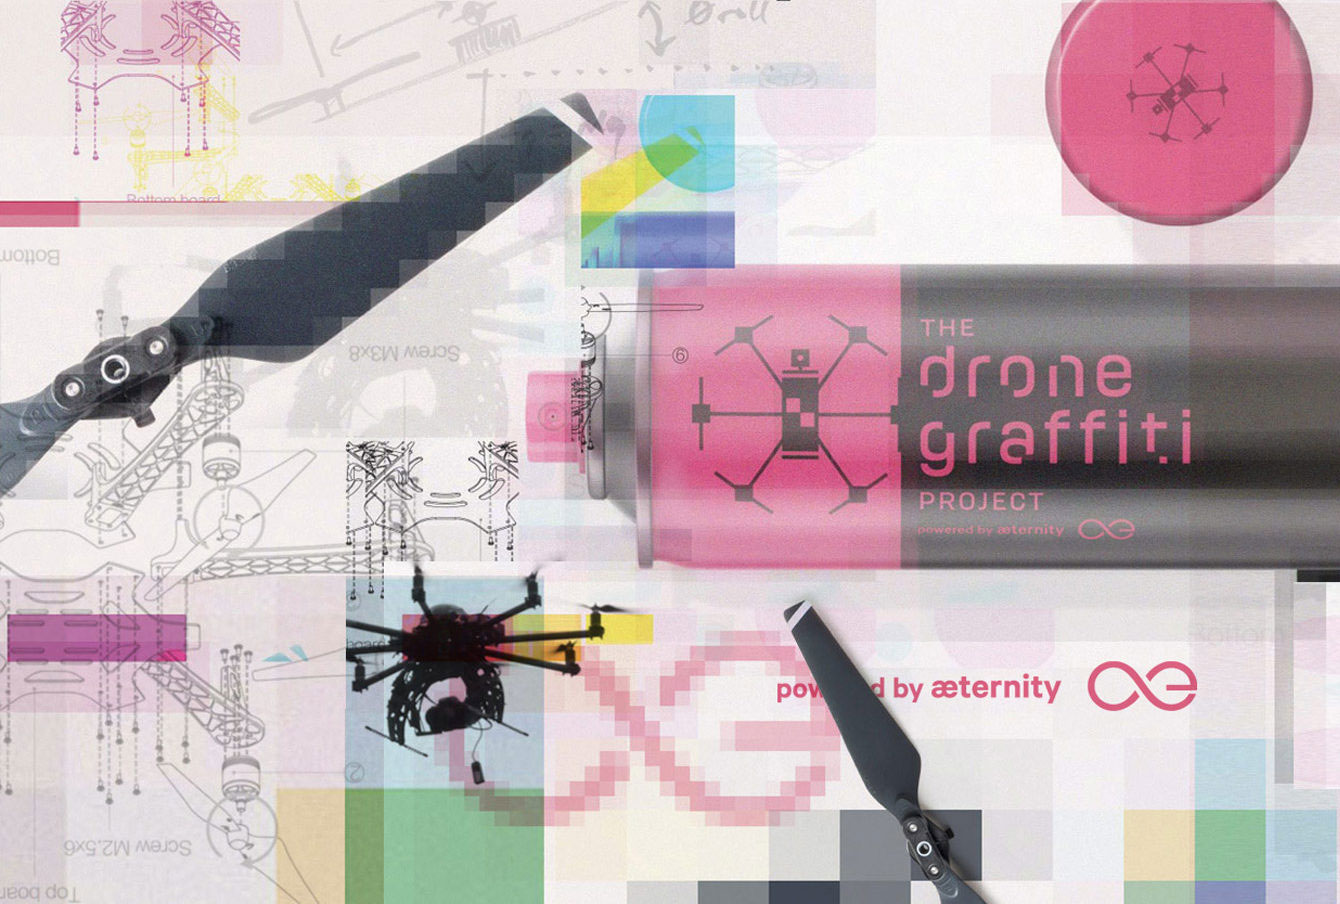 Blockchain drones from the Drone Graffiti Project